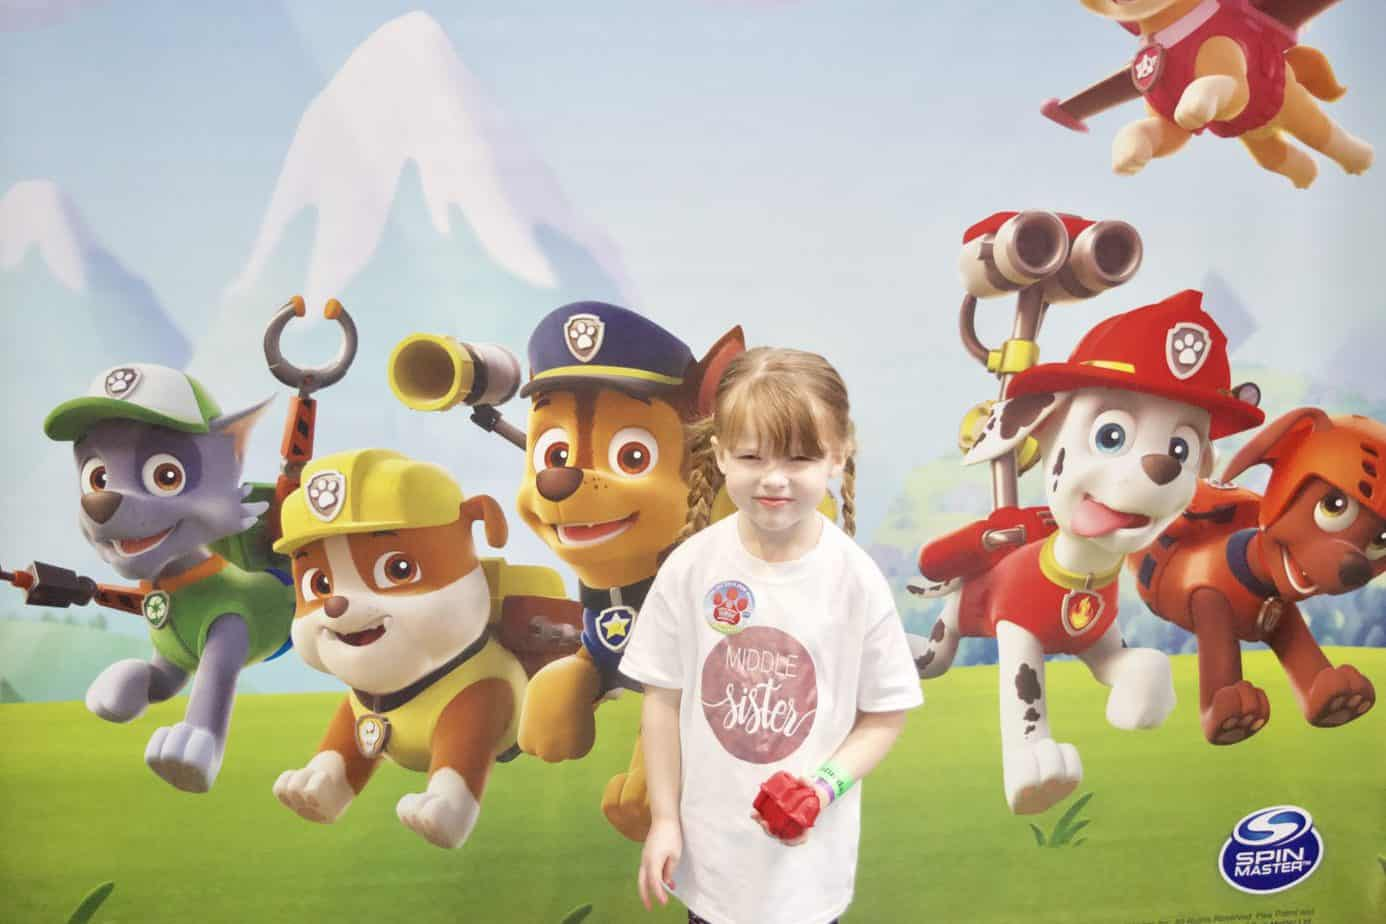 W ready to meet paw patrol for the Paw Awards 2019 at Kidtropolis